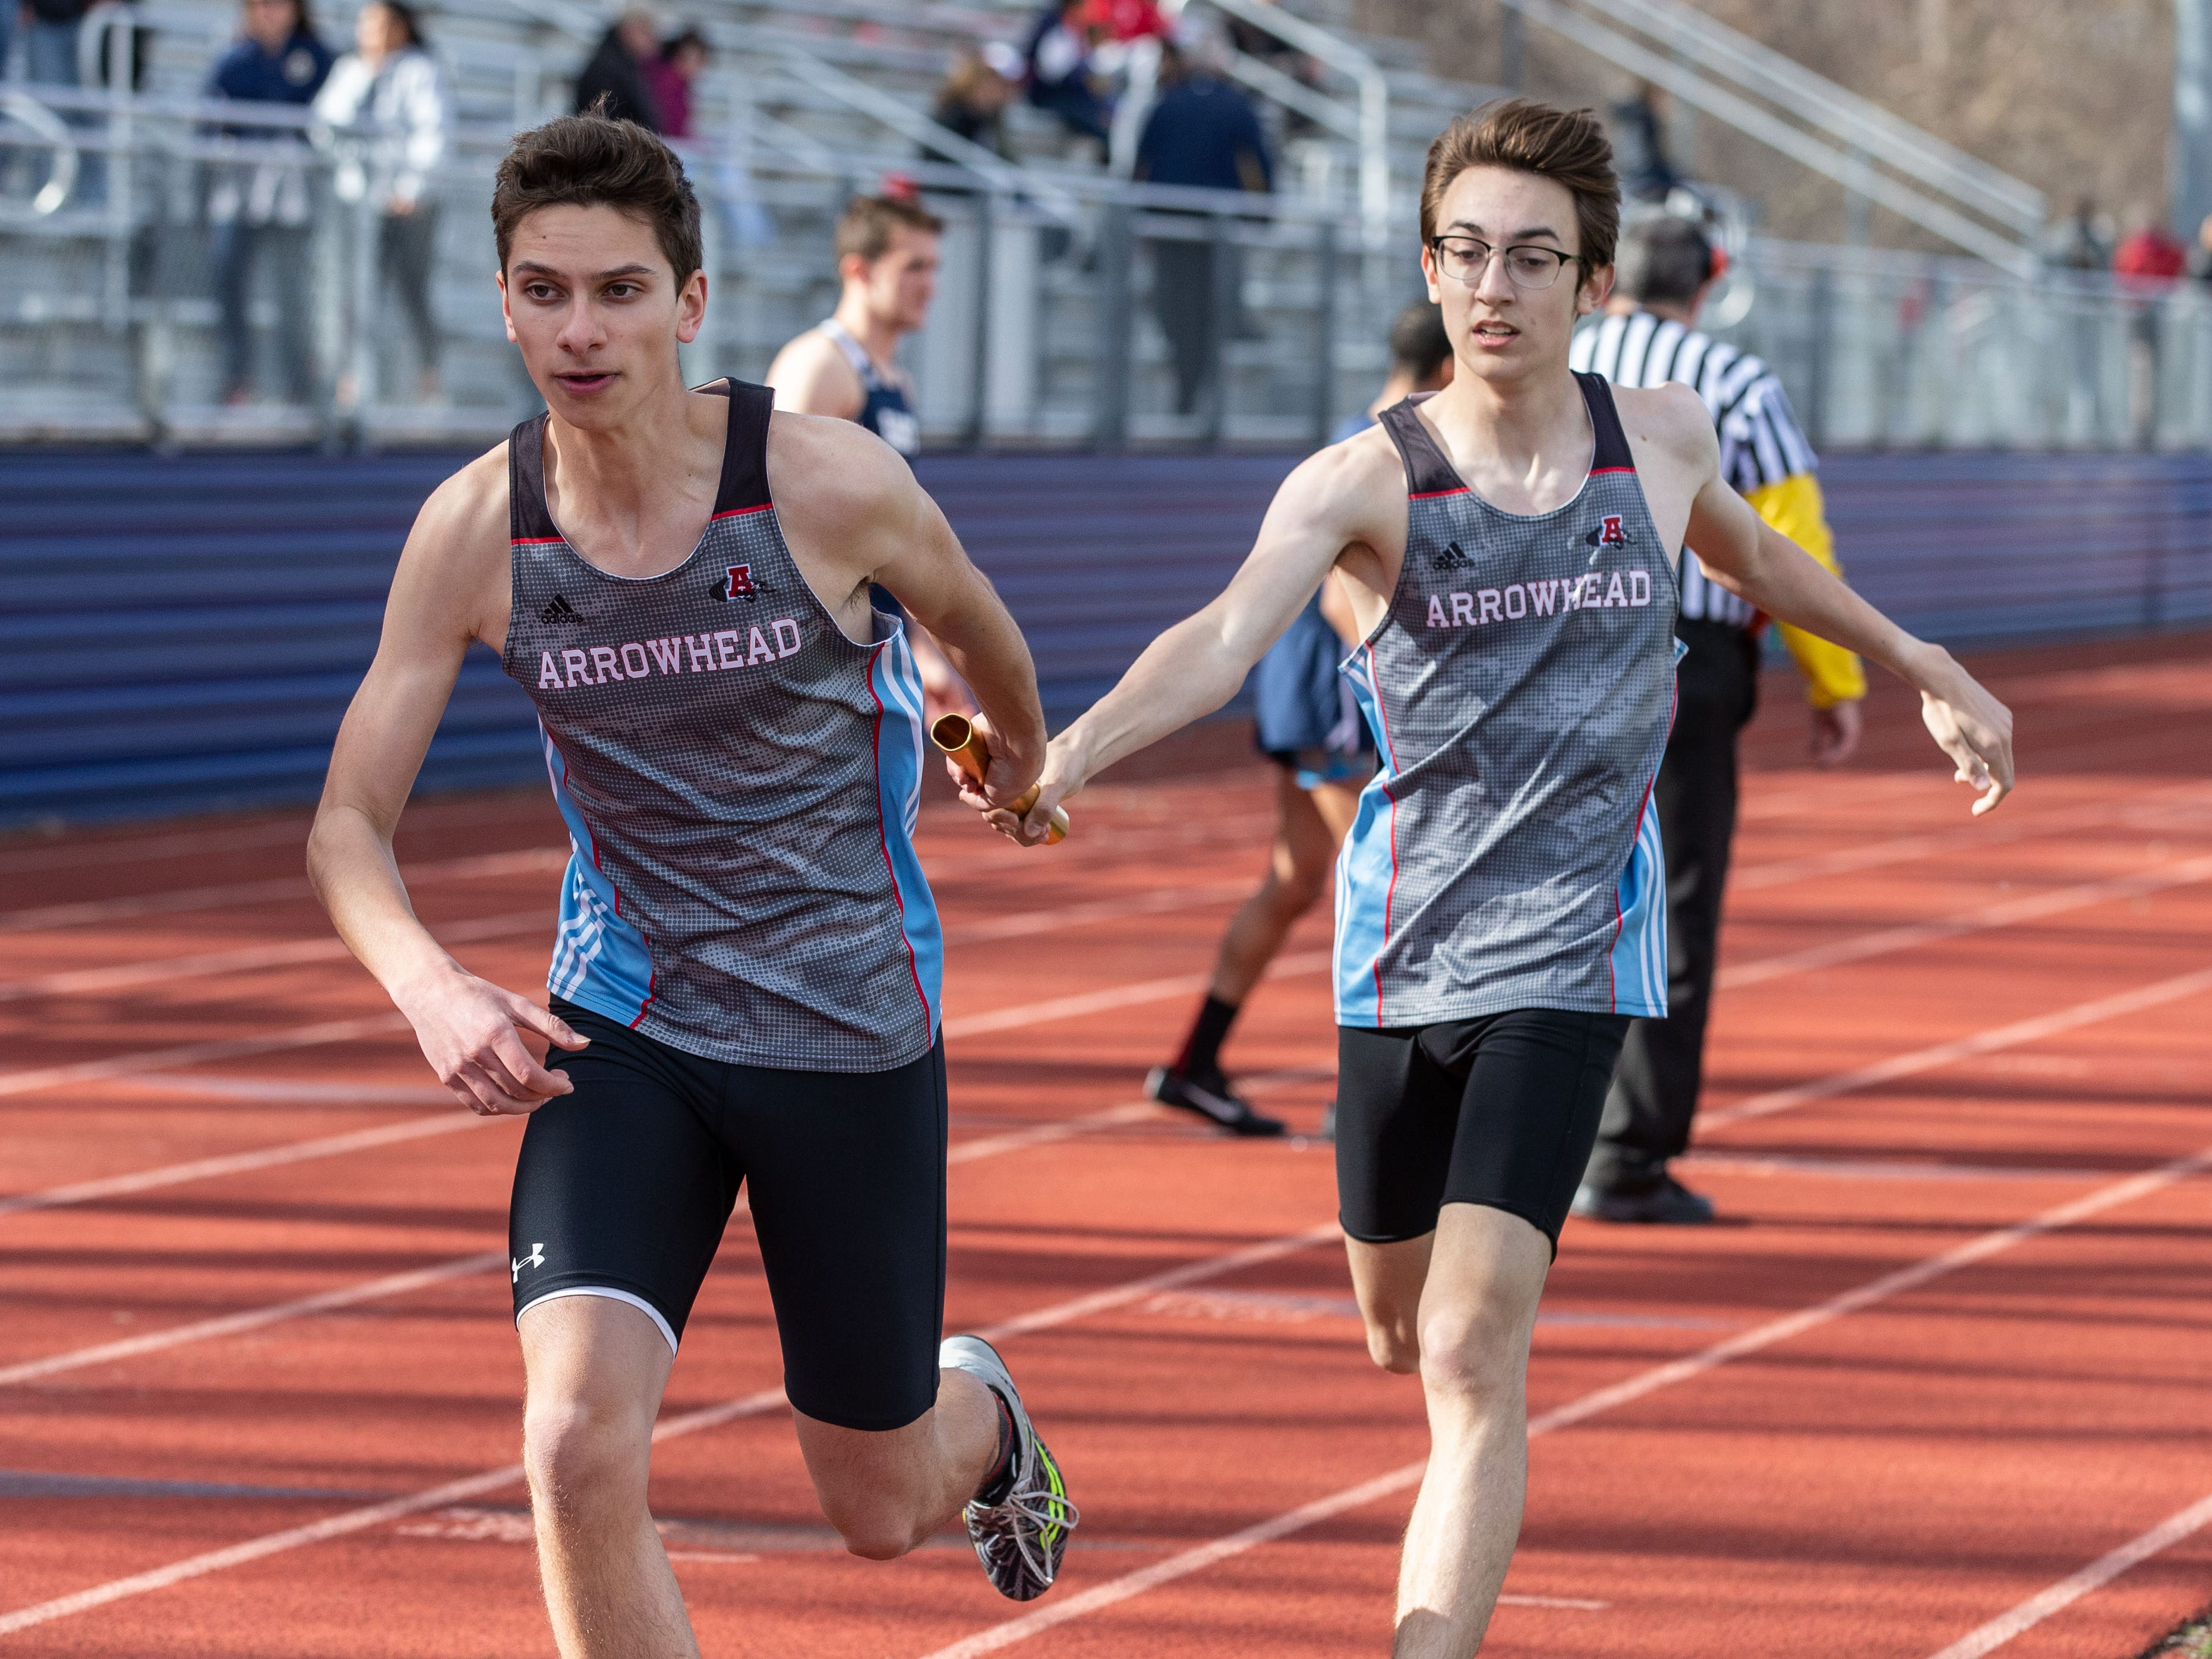 Arrowhead's Taylor Smith (left) takes the baton from Alex Noll in the 4x800 meter relay during the Mike Gain 50th Annual Spartan Invitational at Brookfield East on Tuesday, April 9, 2019.